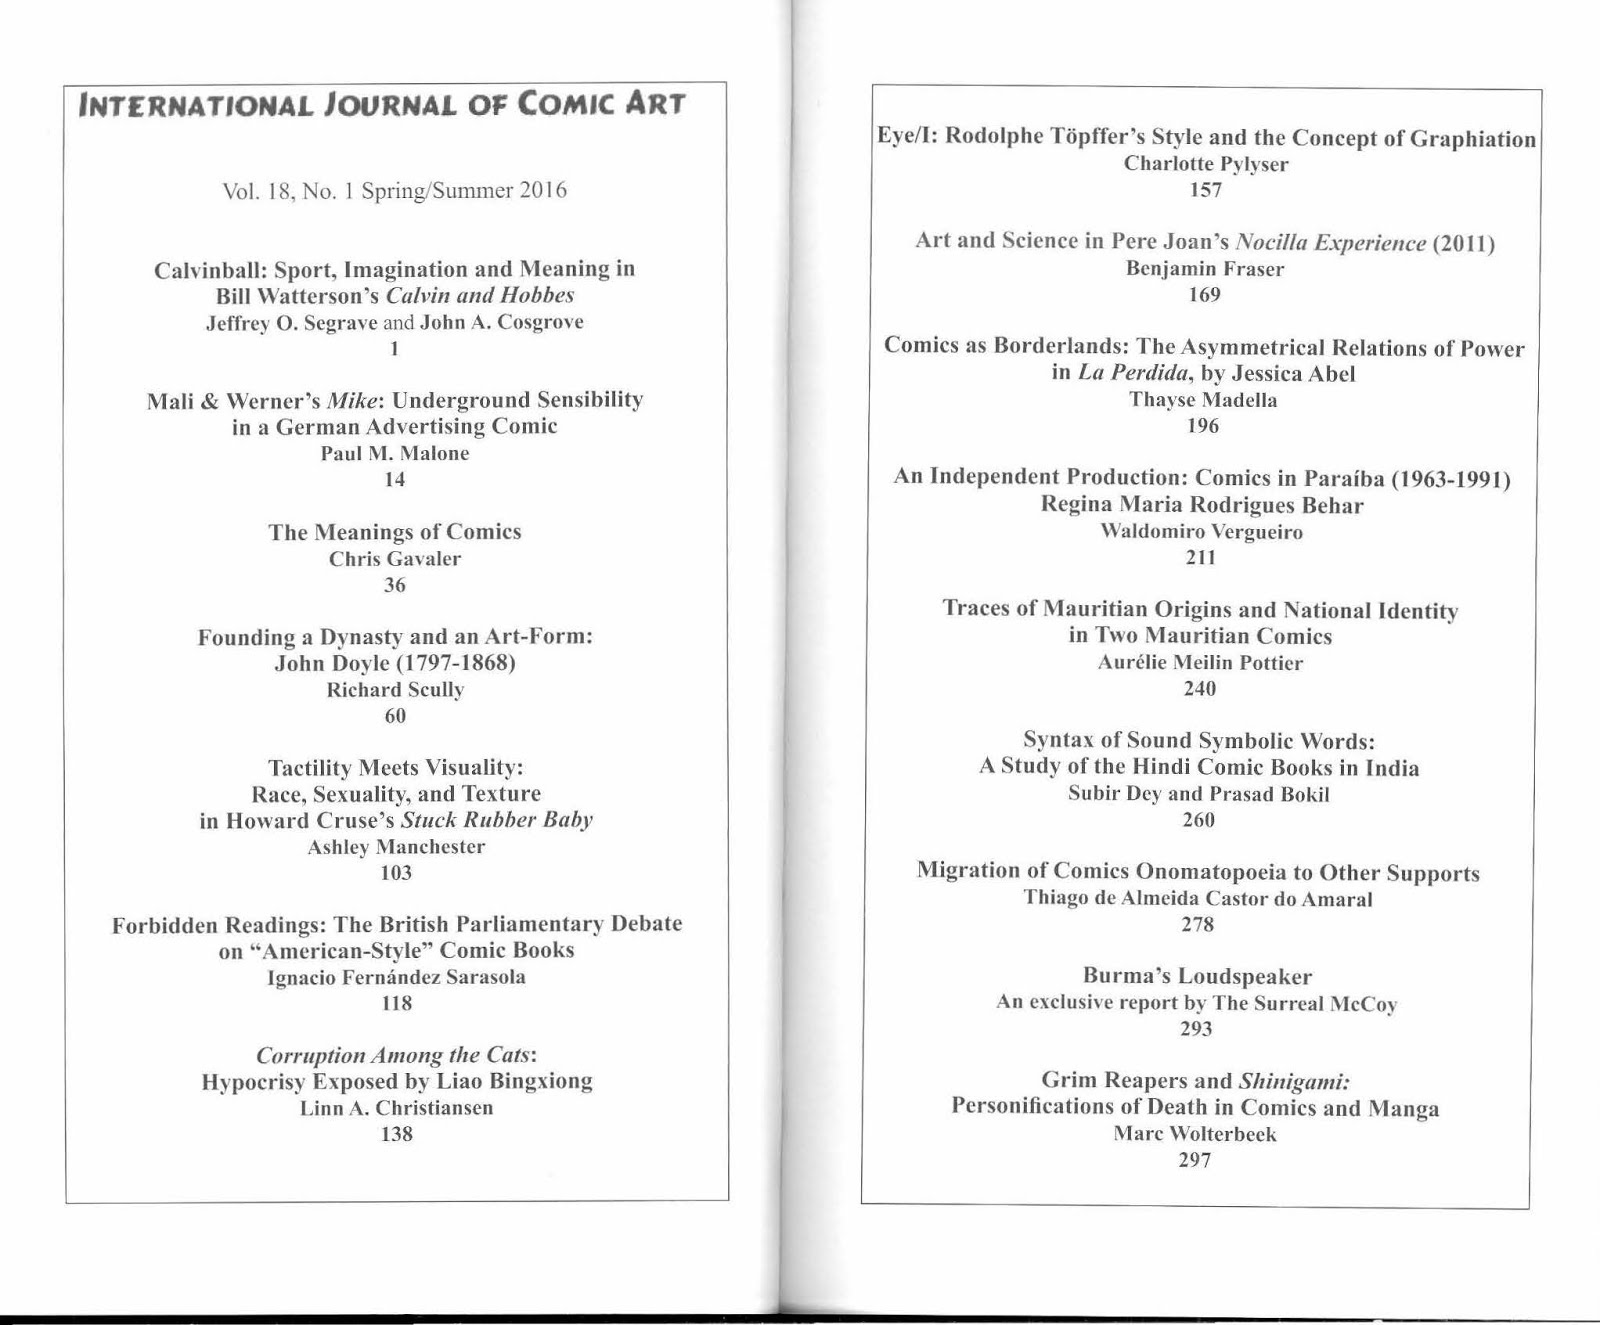 international journal of comic art blog international journal of comic art 18 1 table of contents